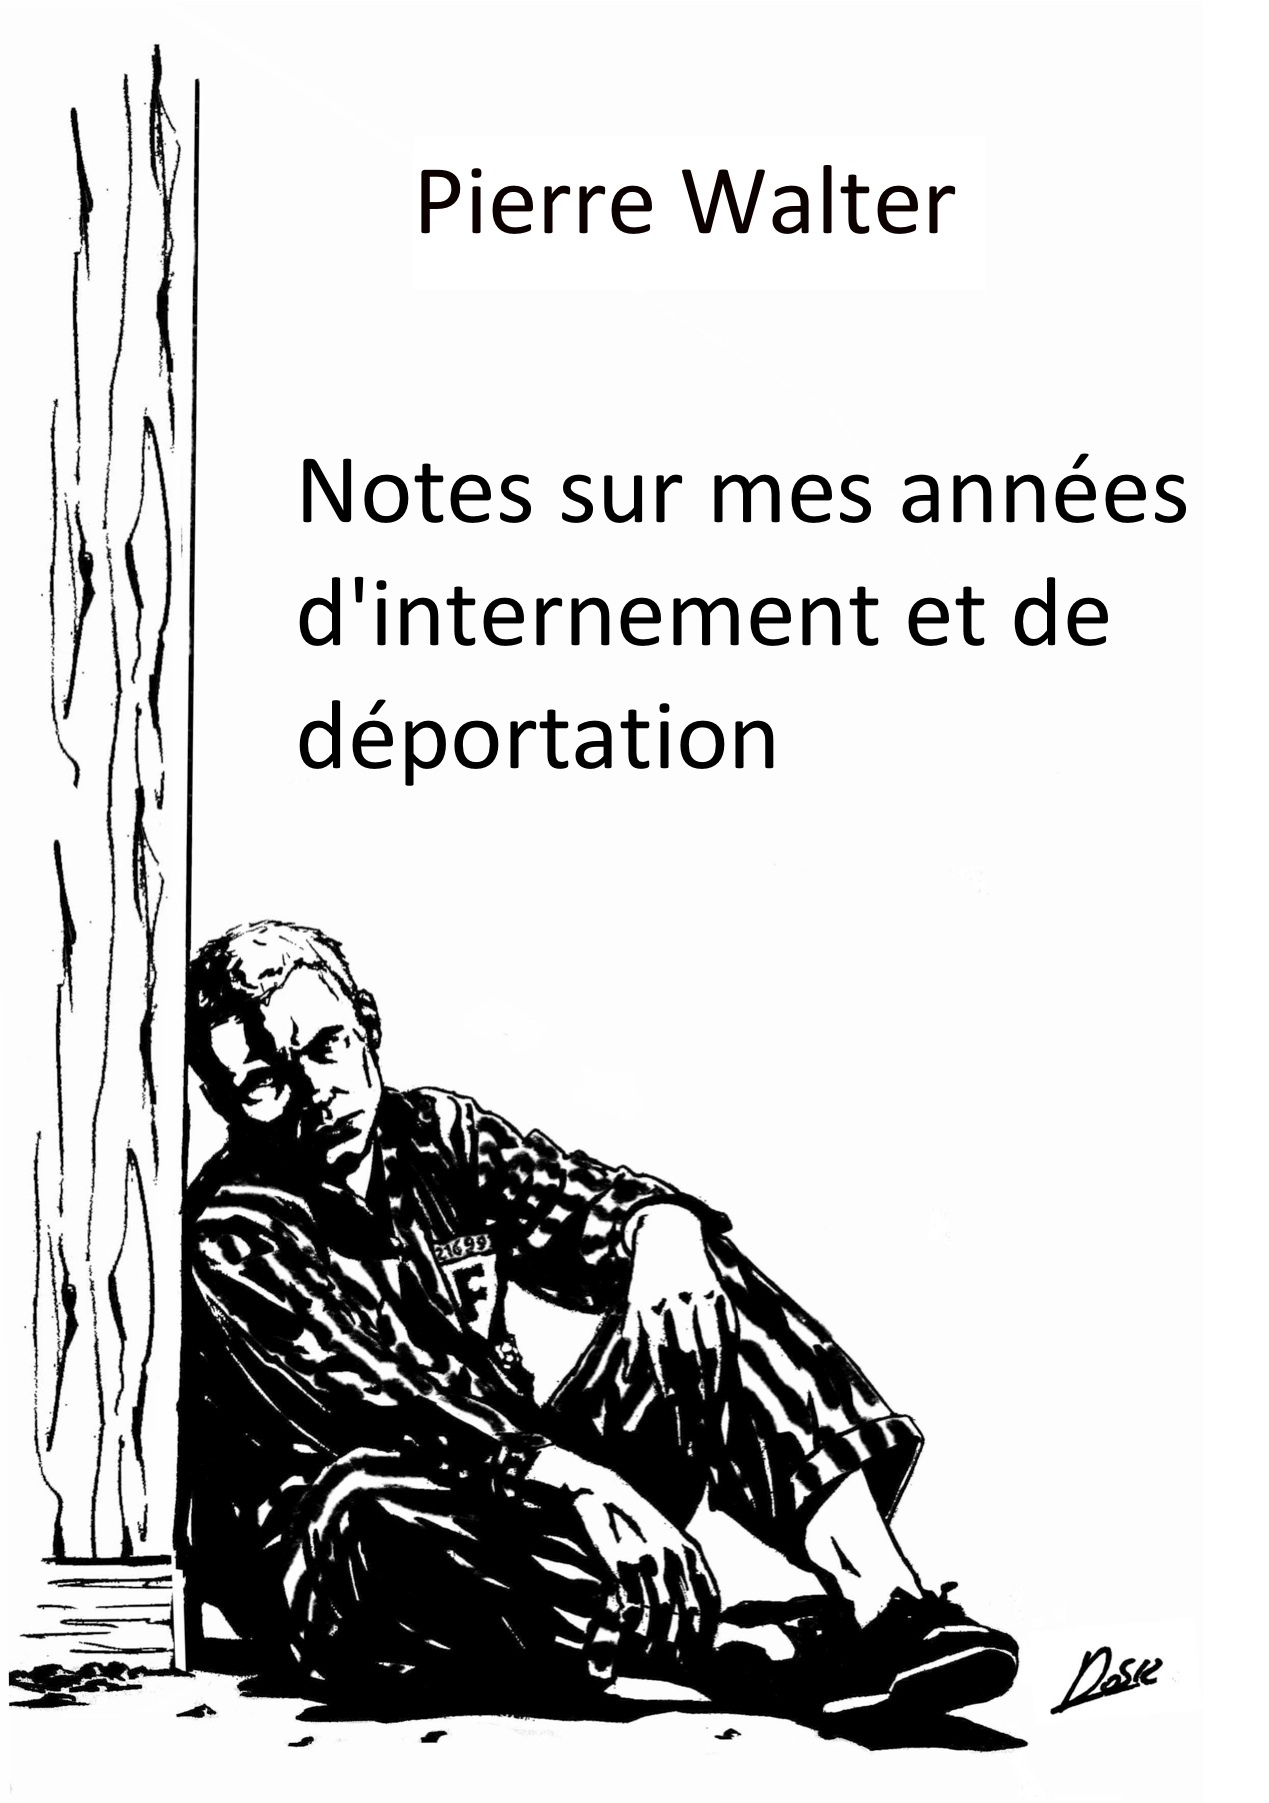 NOTES SUR MES ANNEES D'INTERNEMENT ET DE DEPORTATION